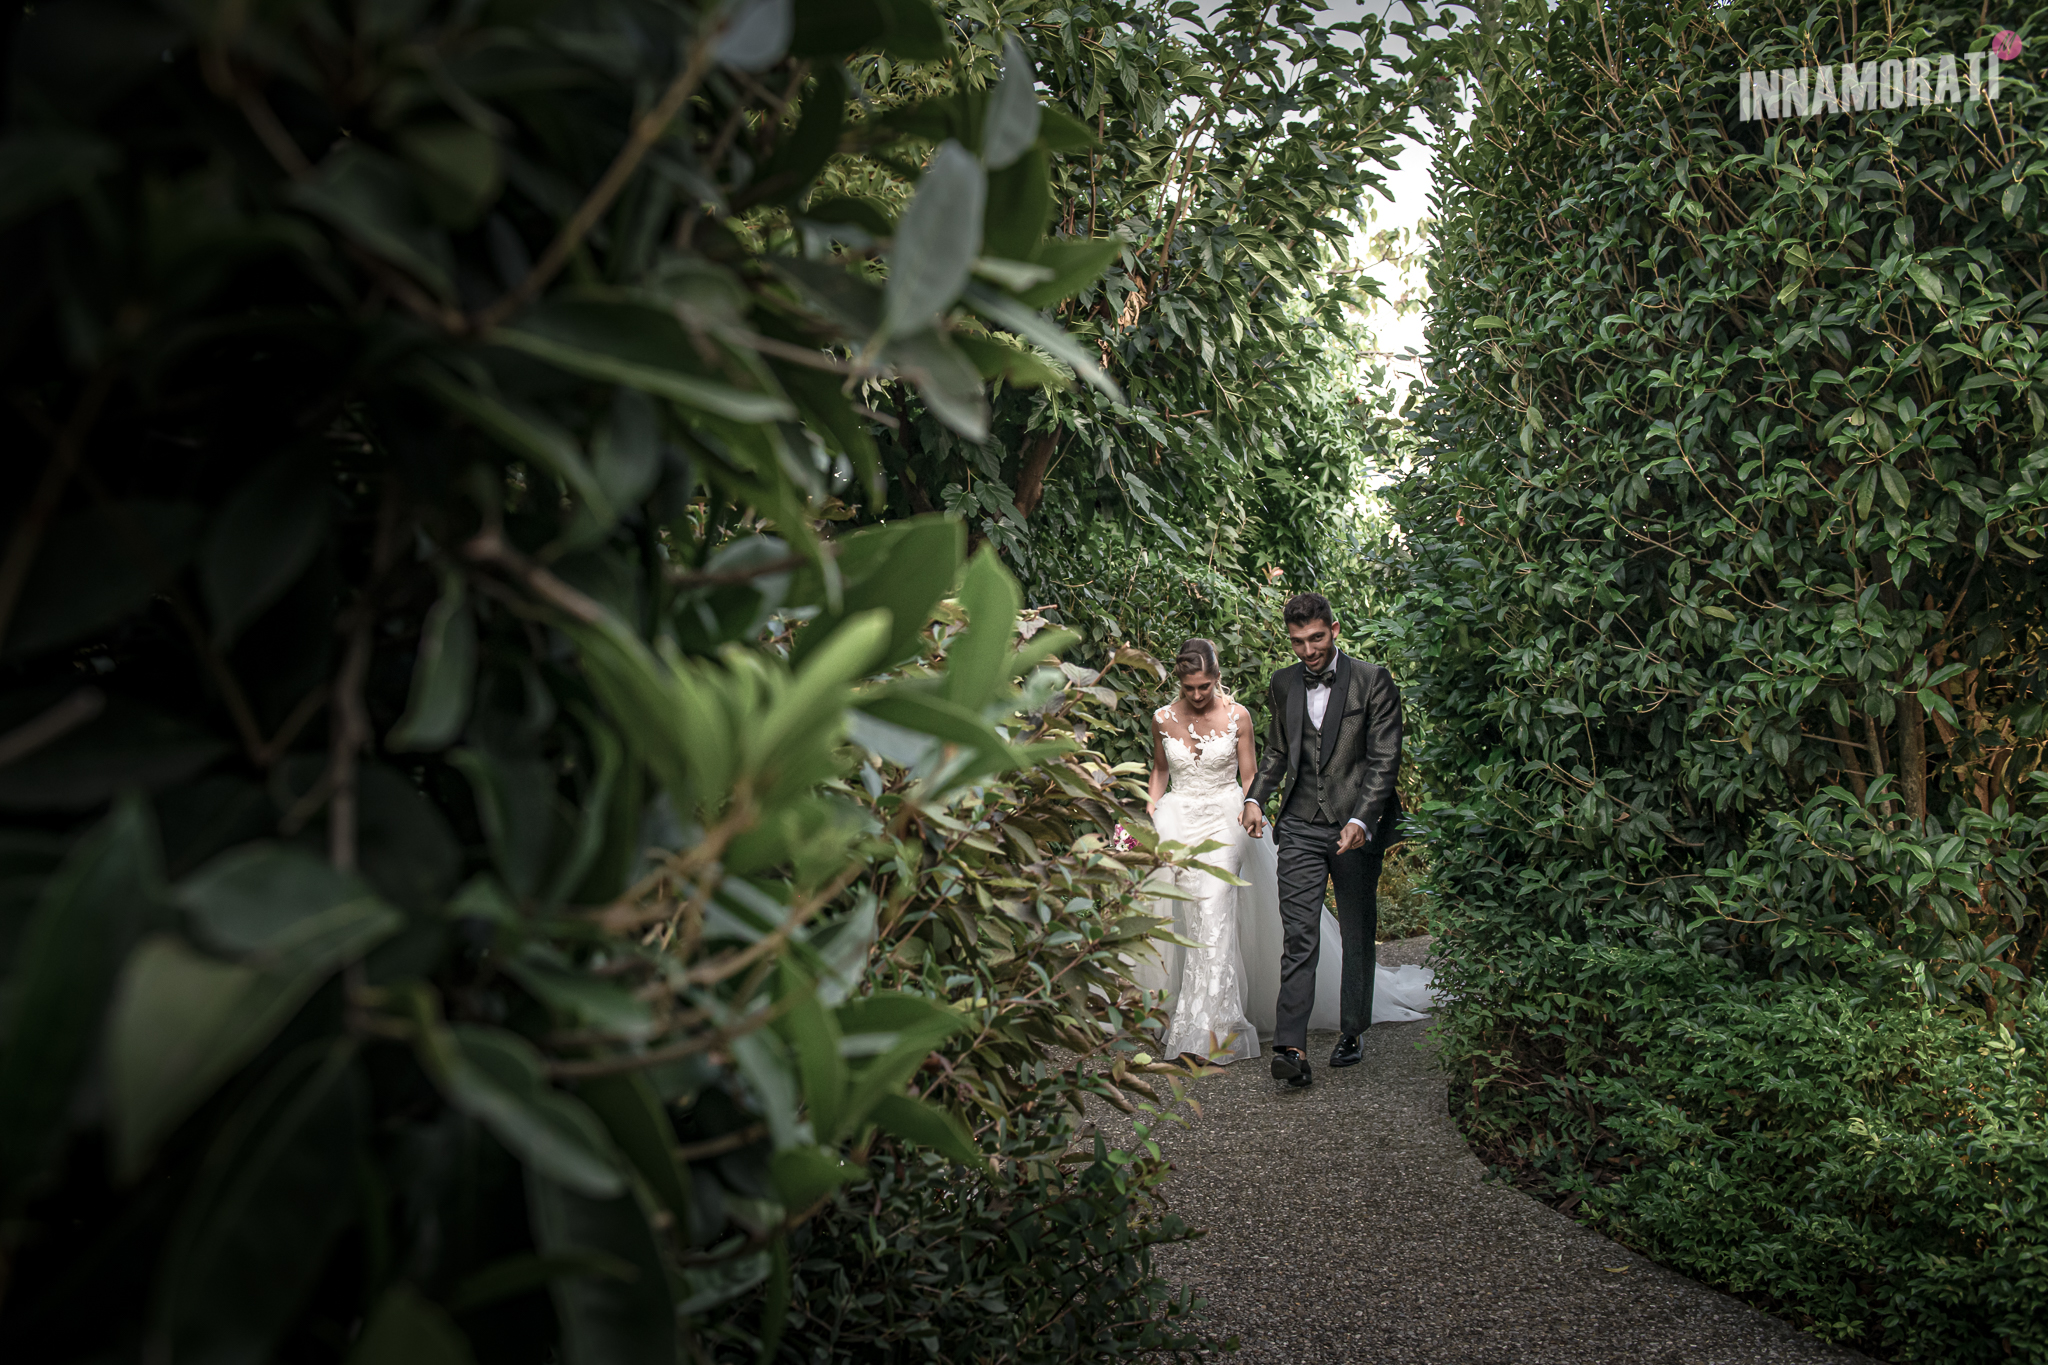 Innamorati Wedding Studio-6.jpg